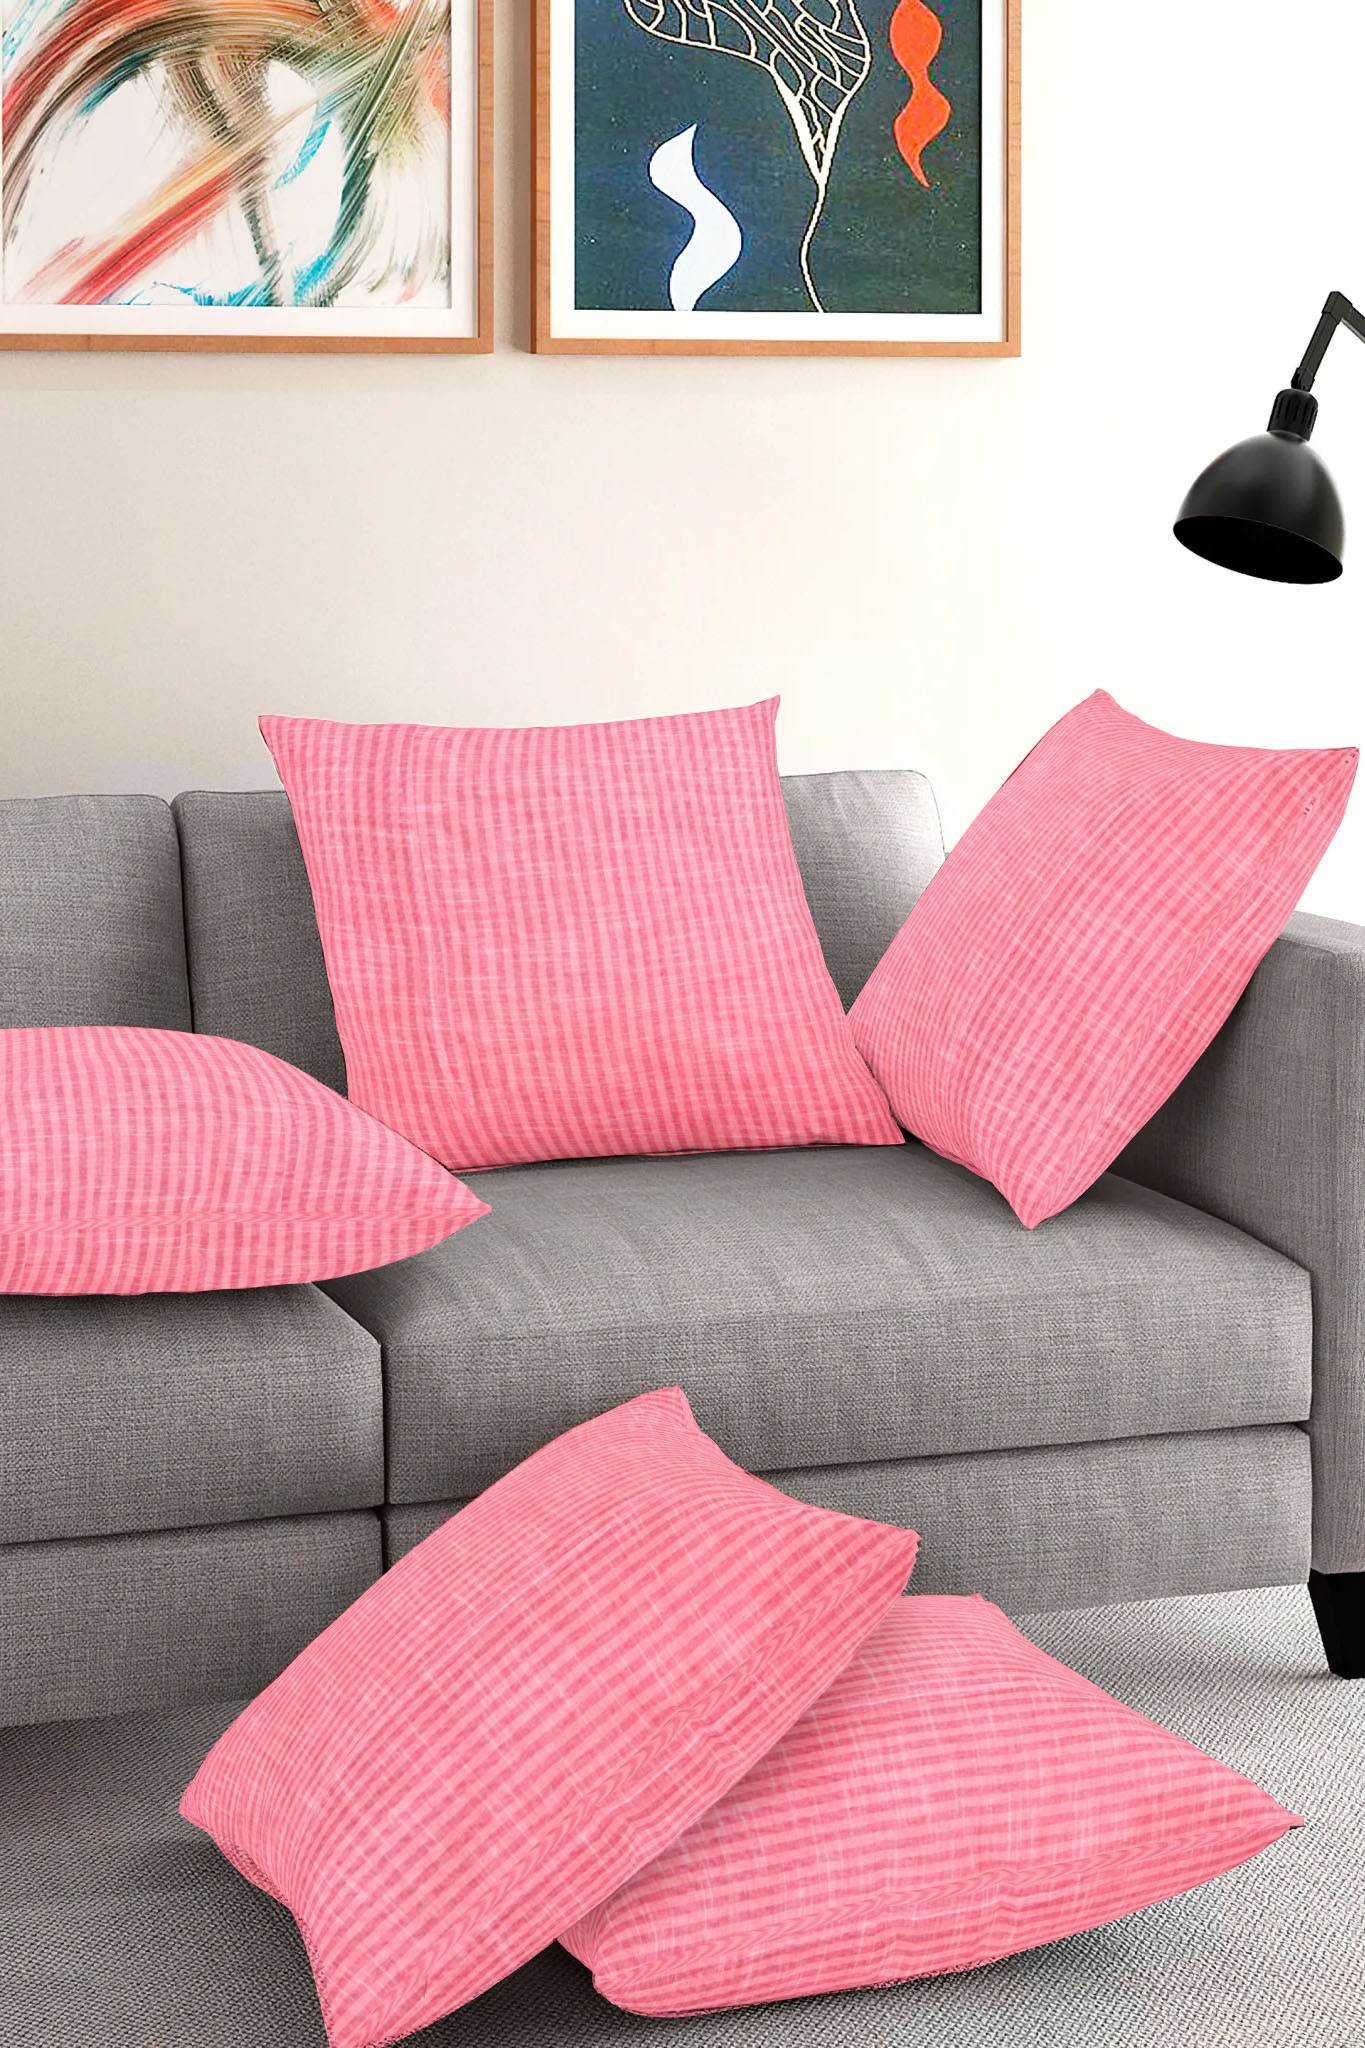 Set of 5-Pink White Cotton Cushion Cover-35376-16x16 Inches